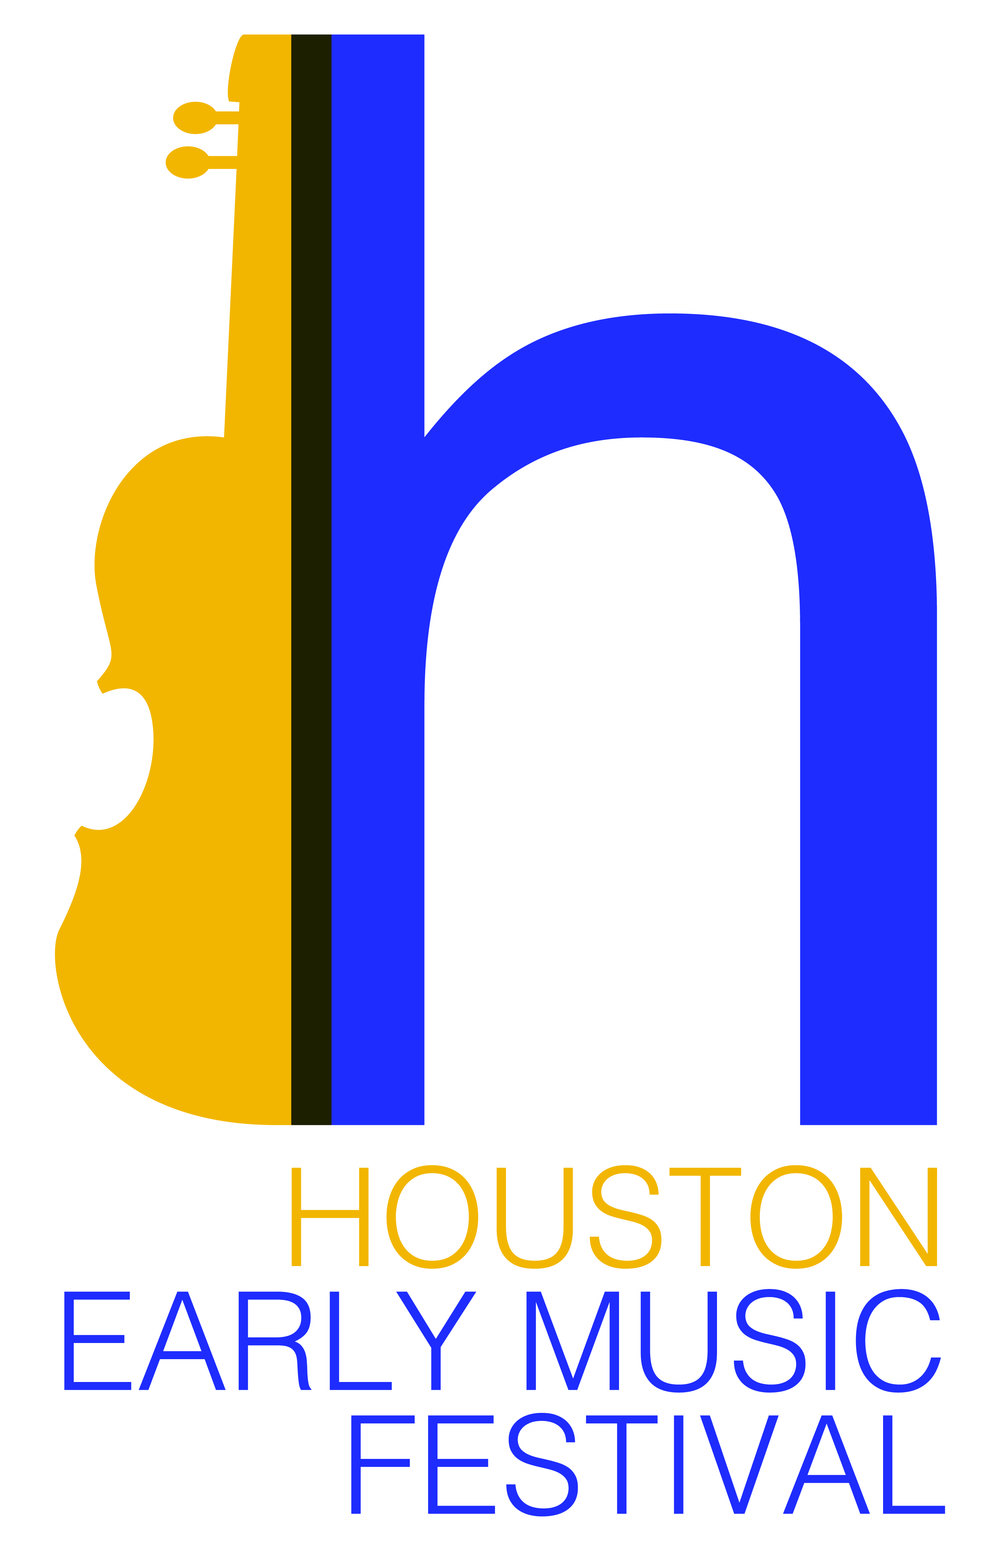 Houston Early Music Festival    February 11-19, 2017